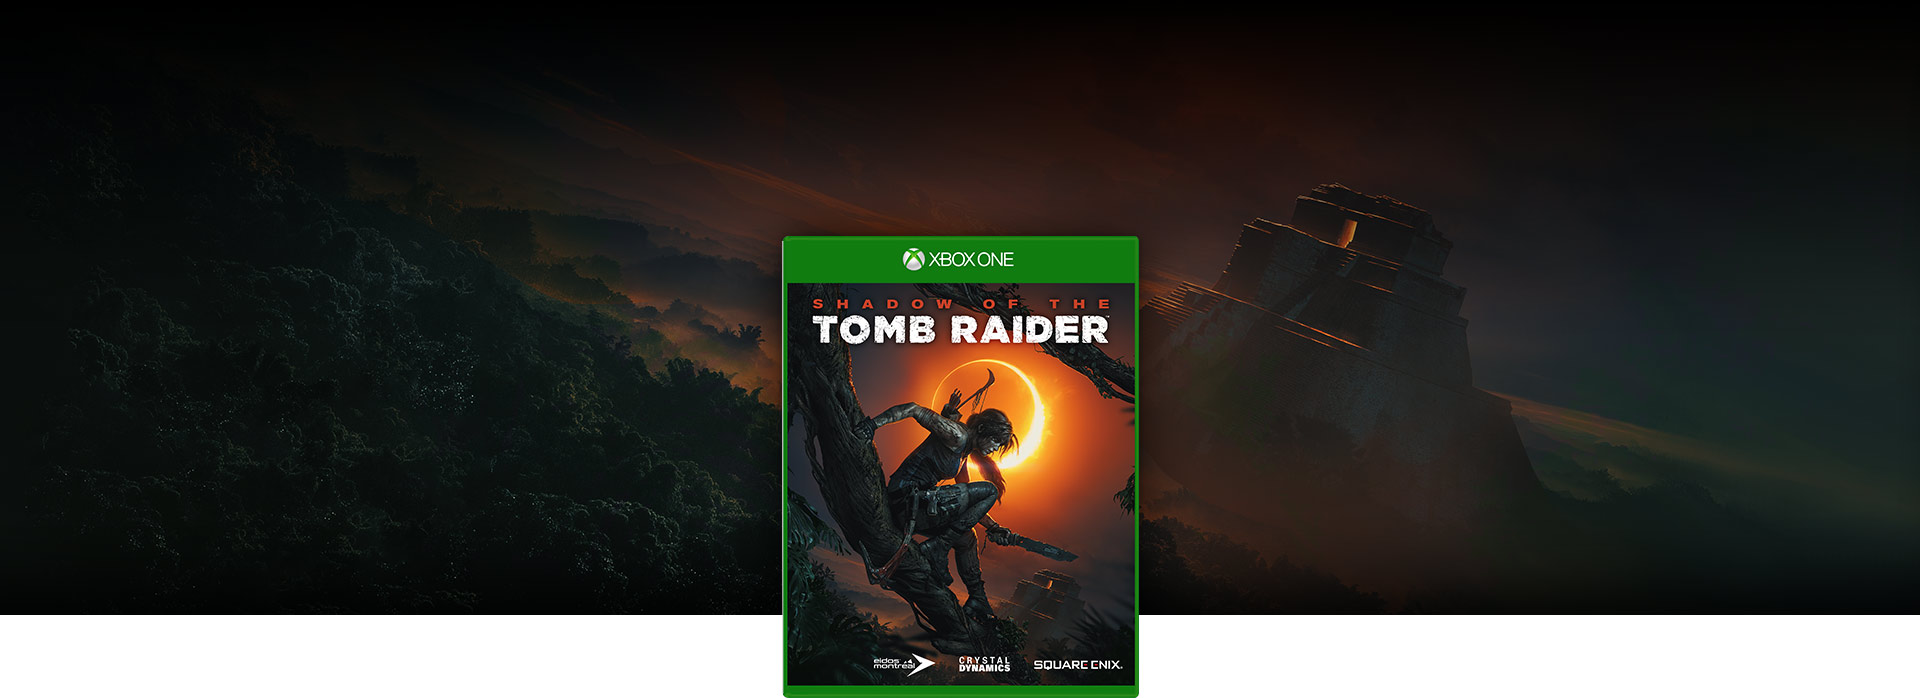 Image de la boîte Shadow of the Tomb Raider, temple dans la jungle en arrière-plan